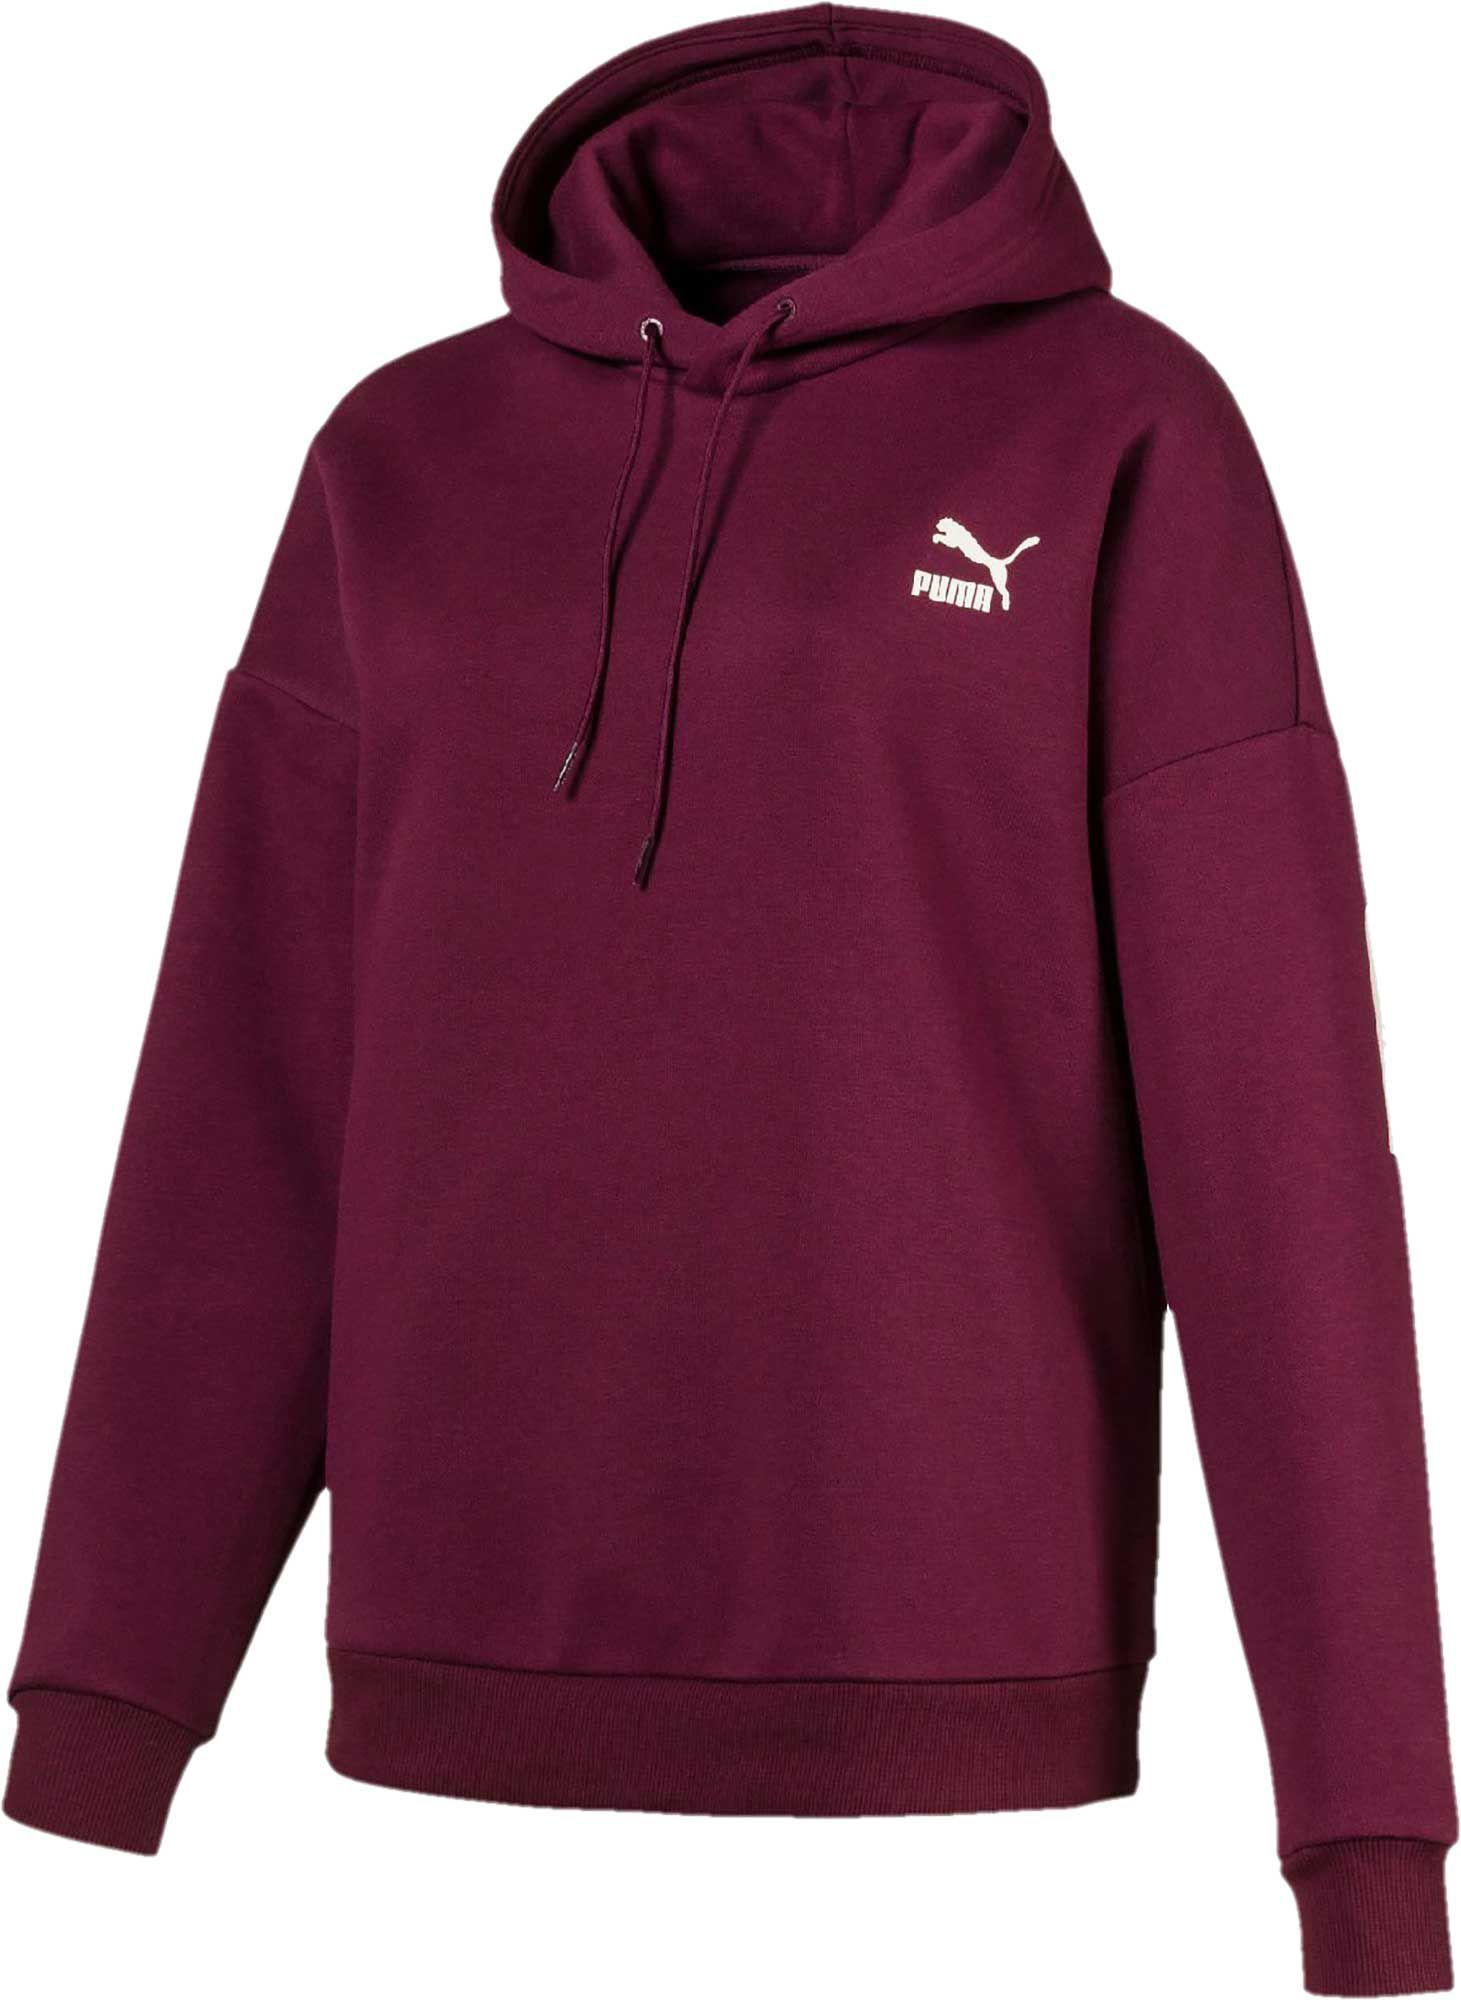 0a6f0c5d7 Puma Women's Retro Hoodie, Size: XS, Brown in 2019 | Products | Puma ...